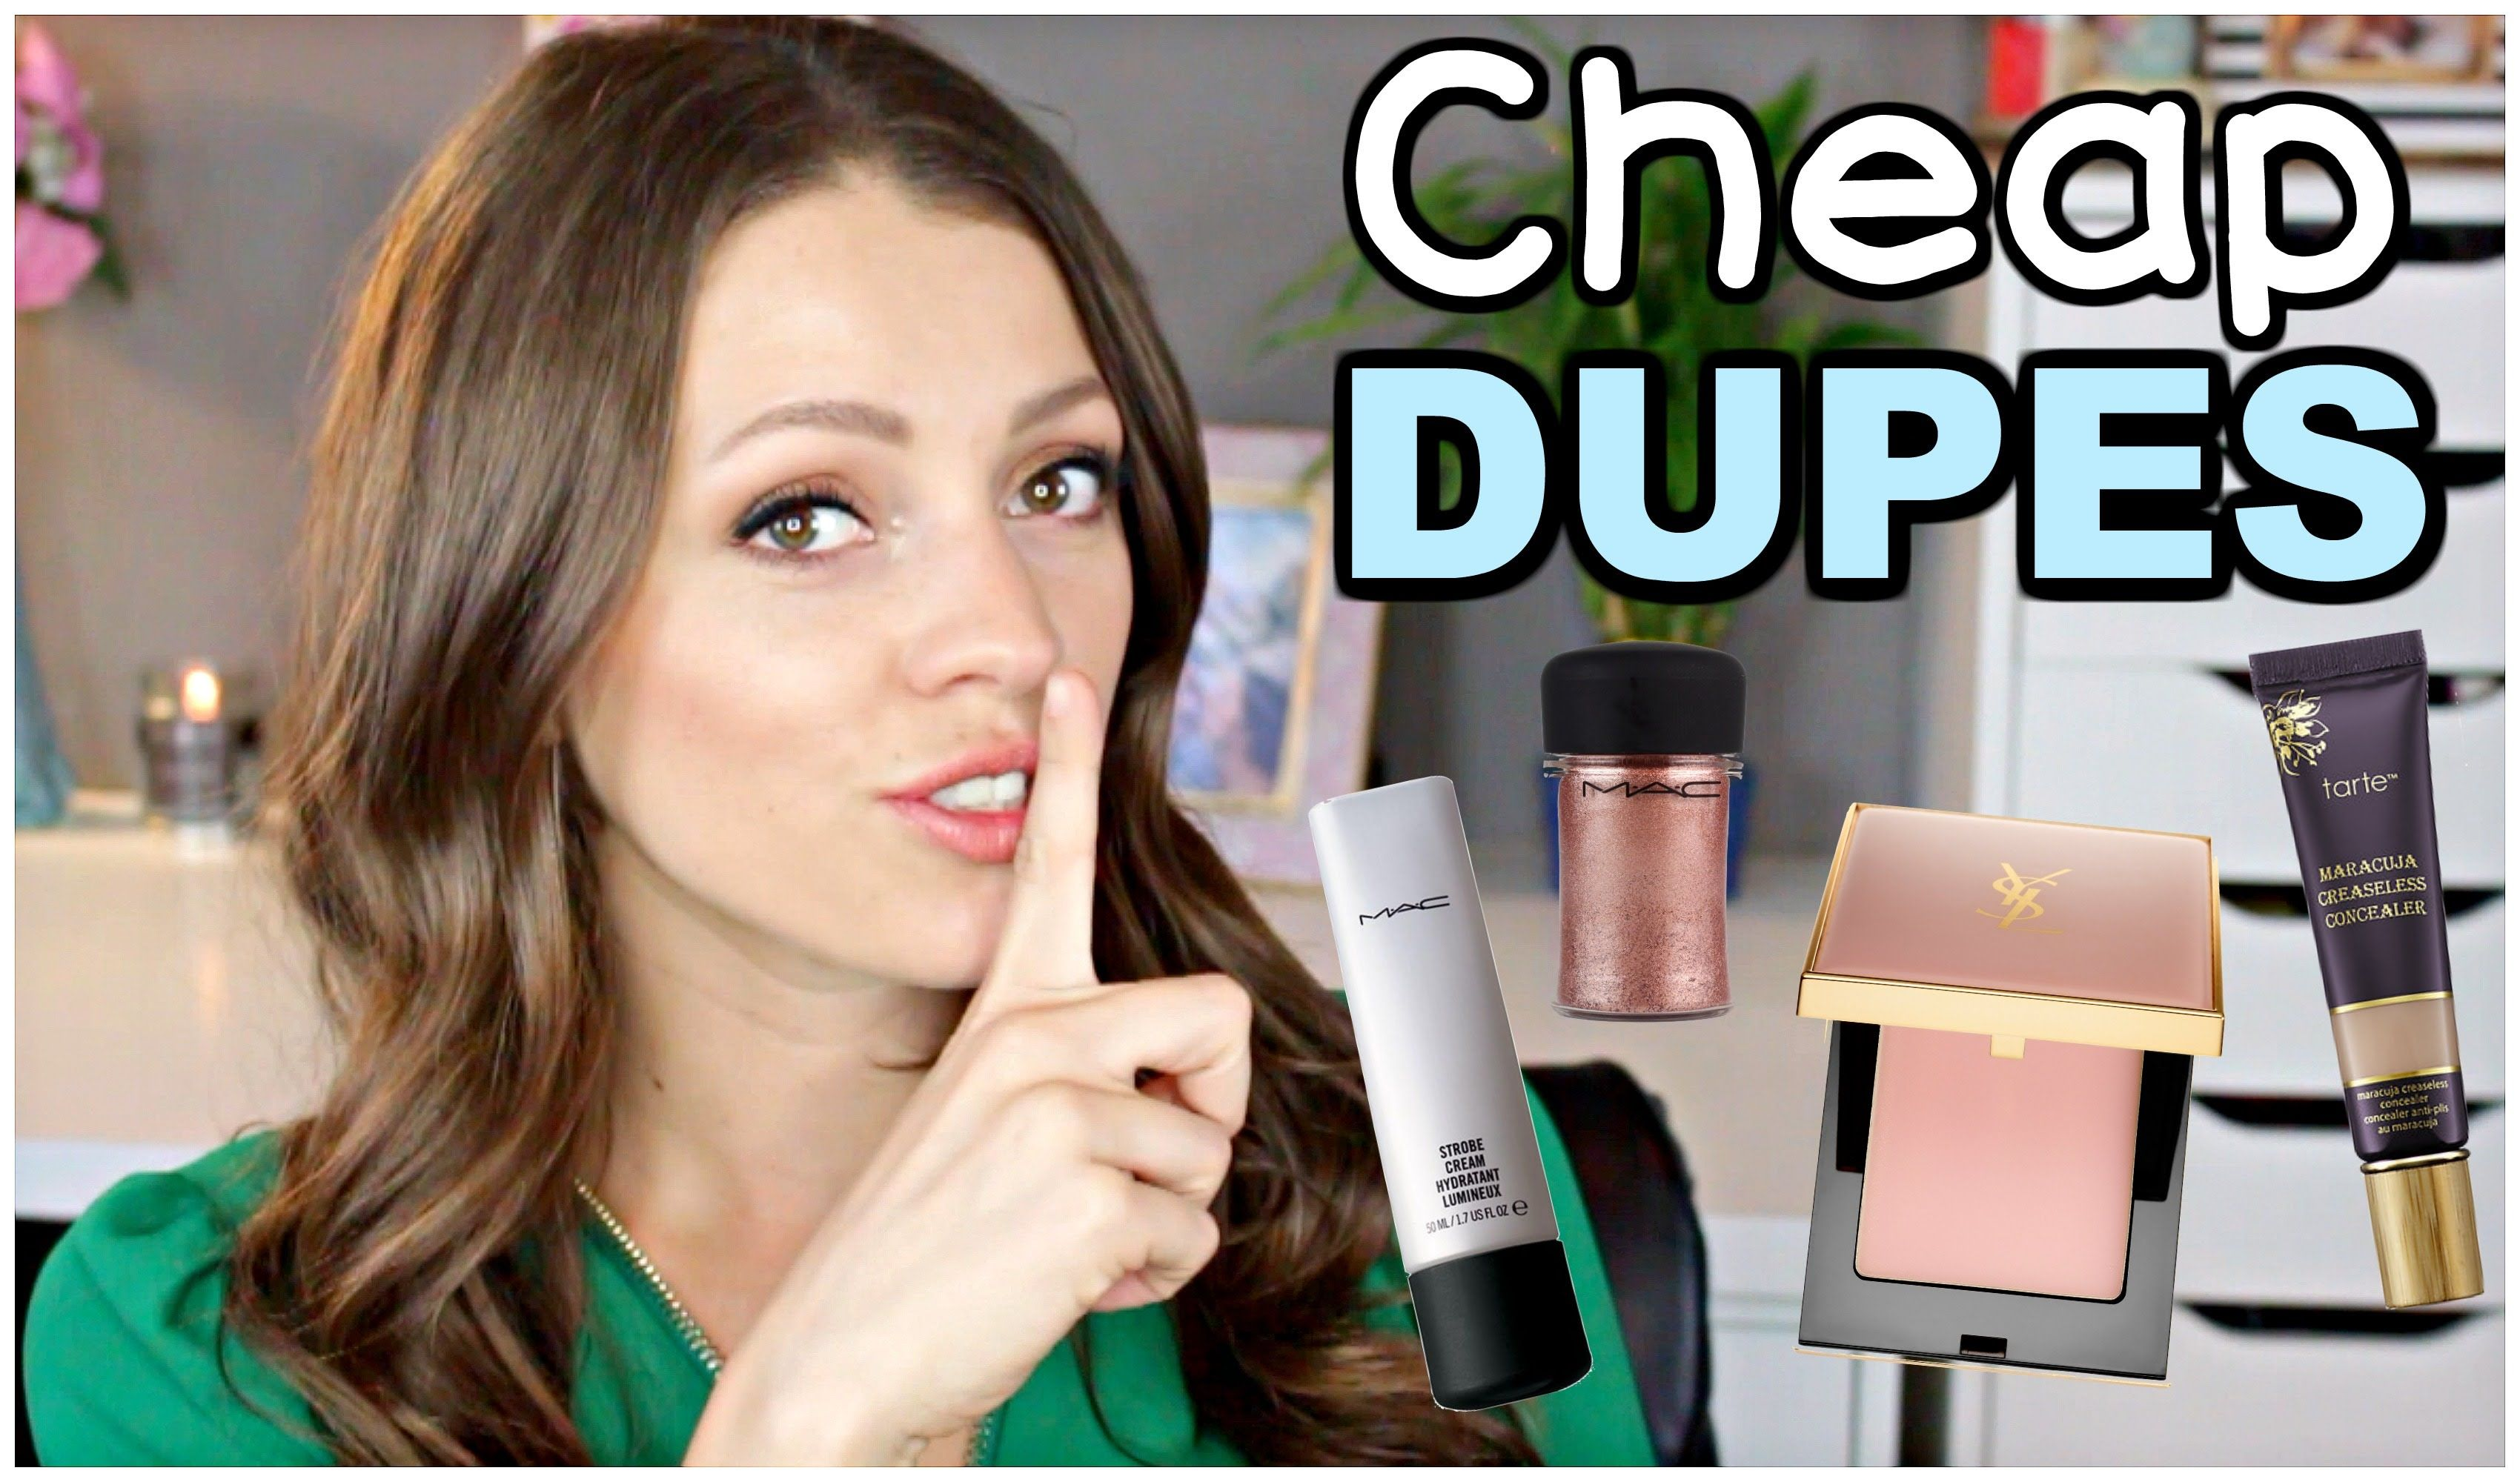 Cheap Drugstore DUPES for High End Makeup 2016 Makeup